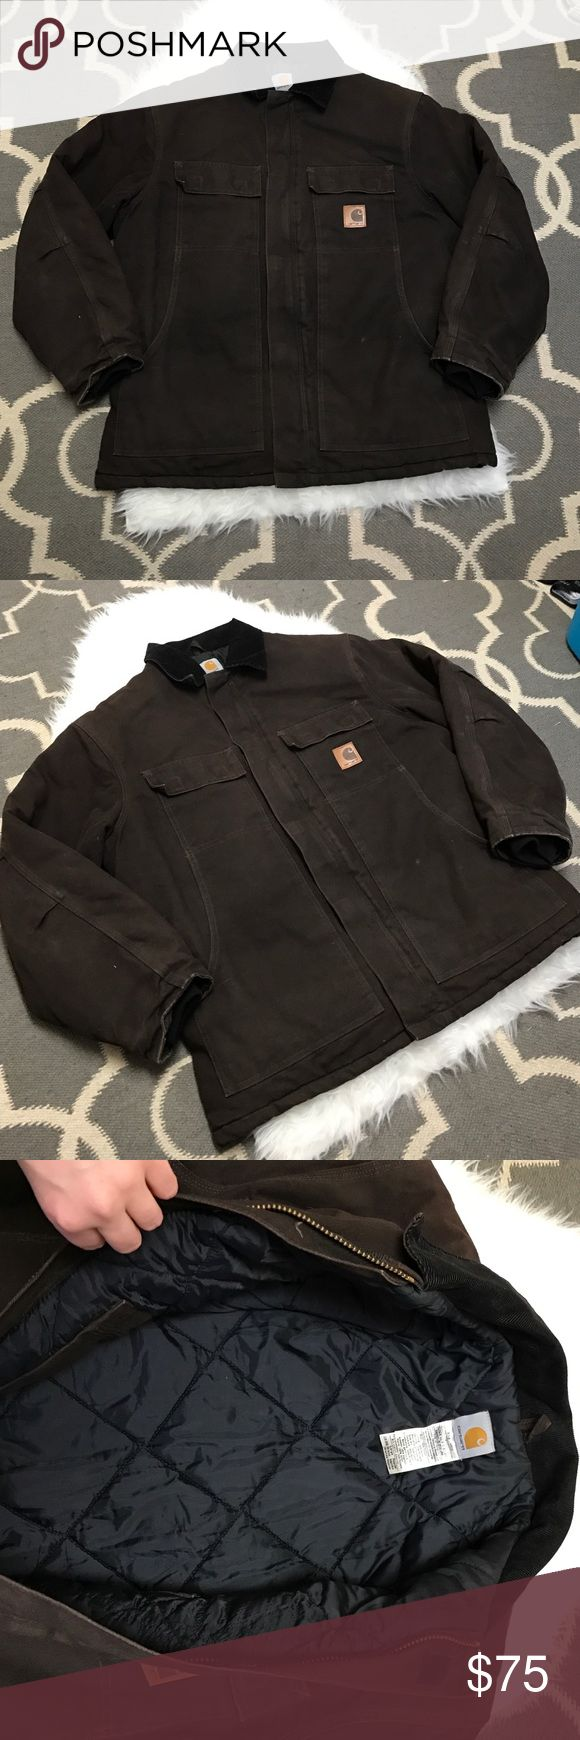 Men's Carhartt Coat Men's Carhartt coat. Quilted interior, interior pockets, draw string waist (interior),zip and Velcro. Gently used but still in excellent condition! No holes, rips or worn areas. Chocolate brown. open to reasonable offers. Carhartt Jackets & Coats